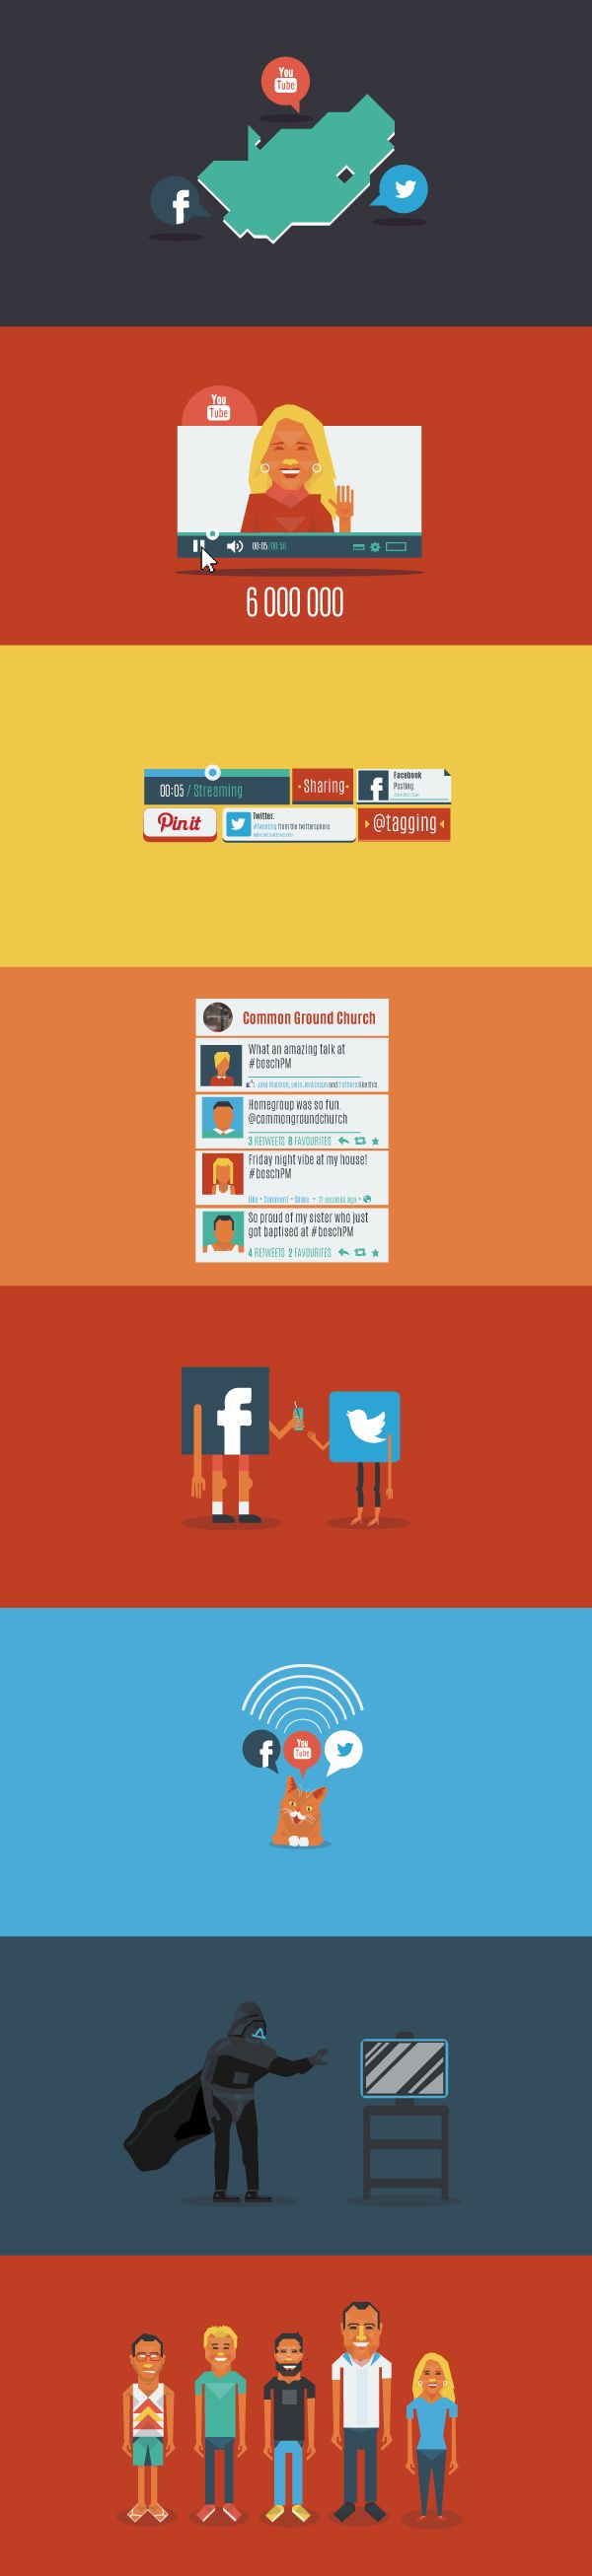 #BoschPM Social Media by Richard Bolland, via Behance